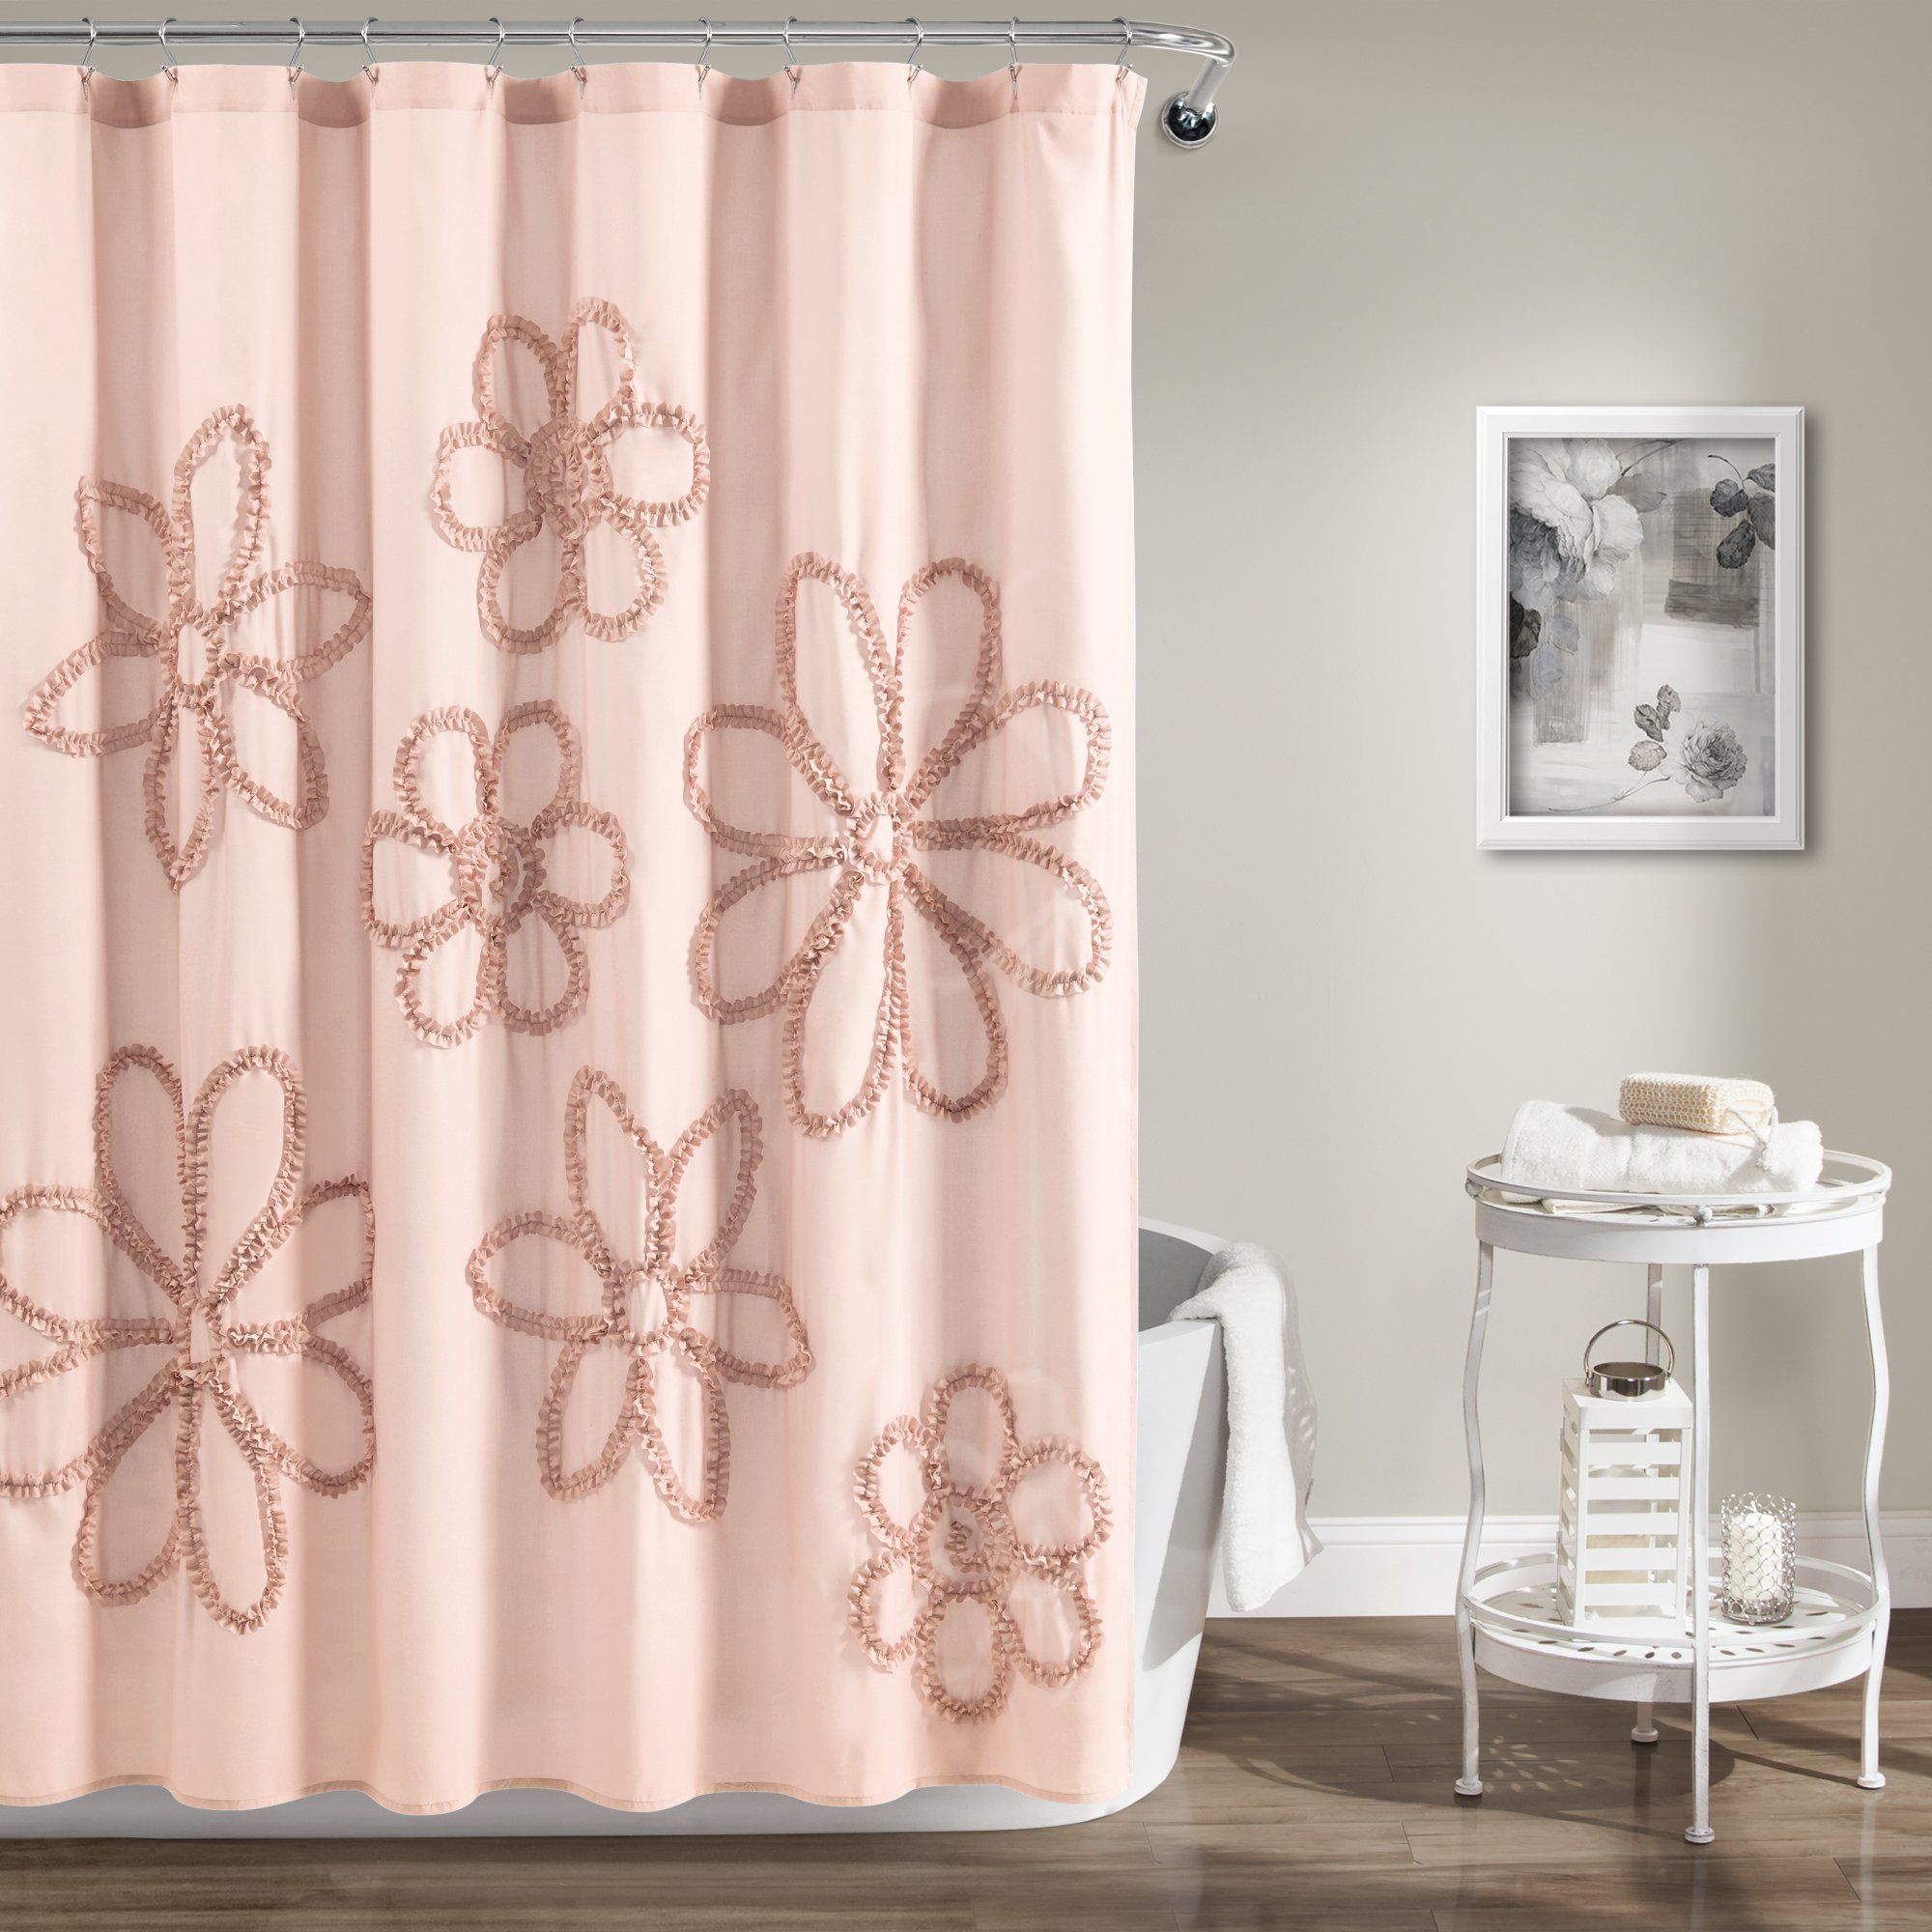 Ruffle Flower Shower Curtain In 2020 Flower Shower Curtain Lush